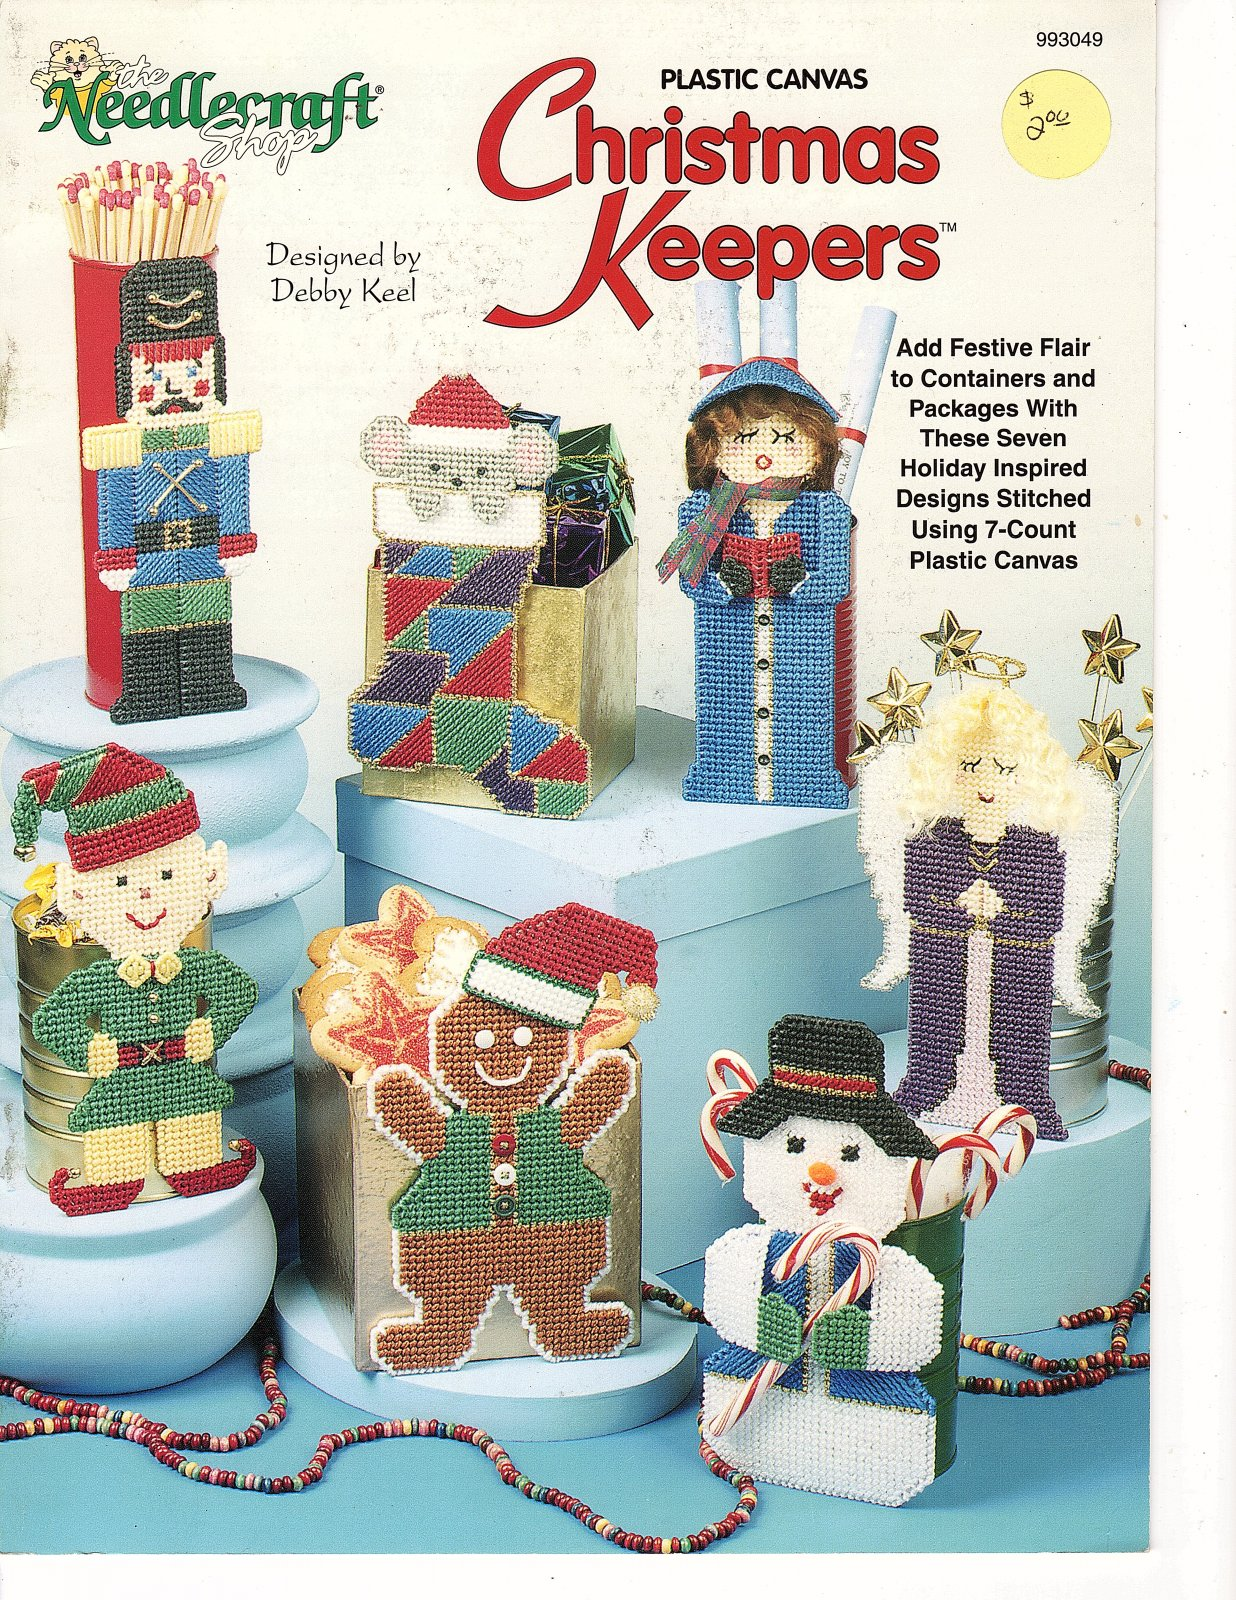 Plastic Canvas Christmas Keepers by The Needlecraft Shop 993049